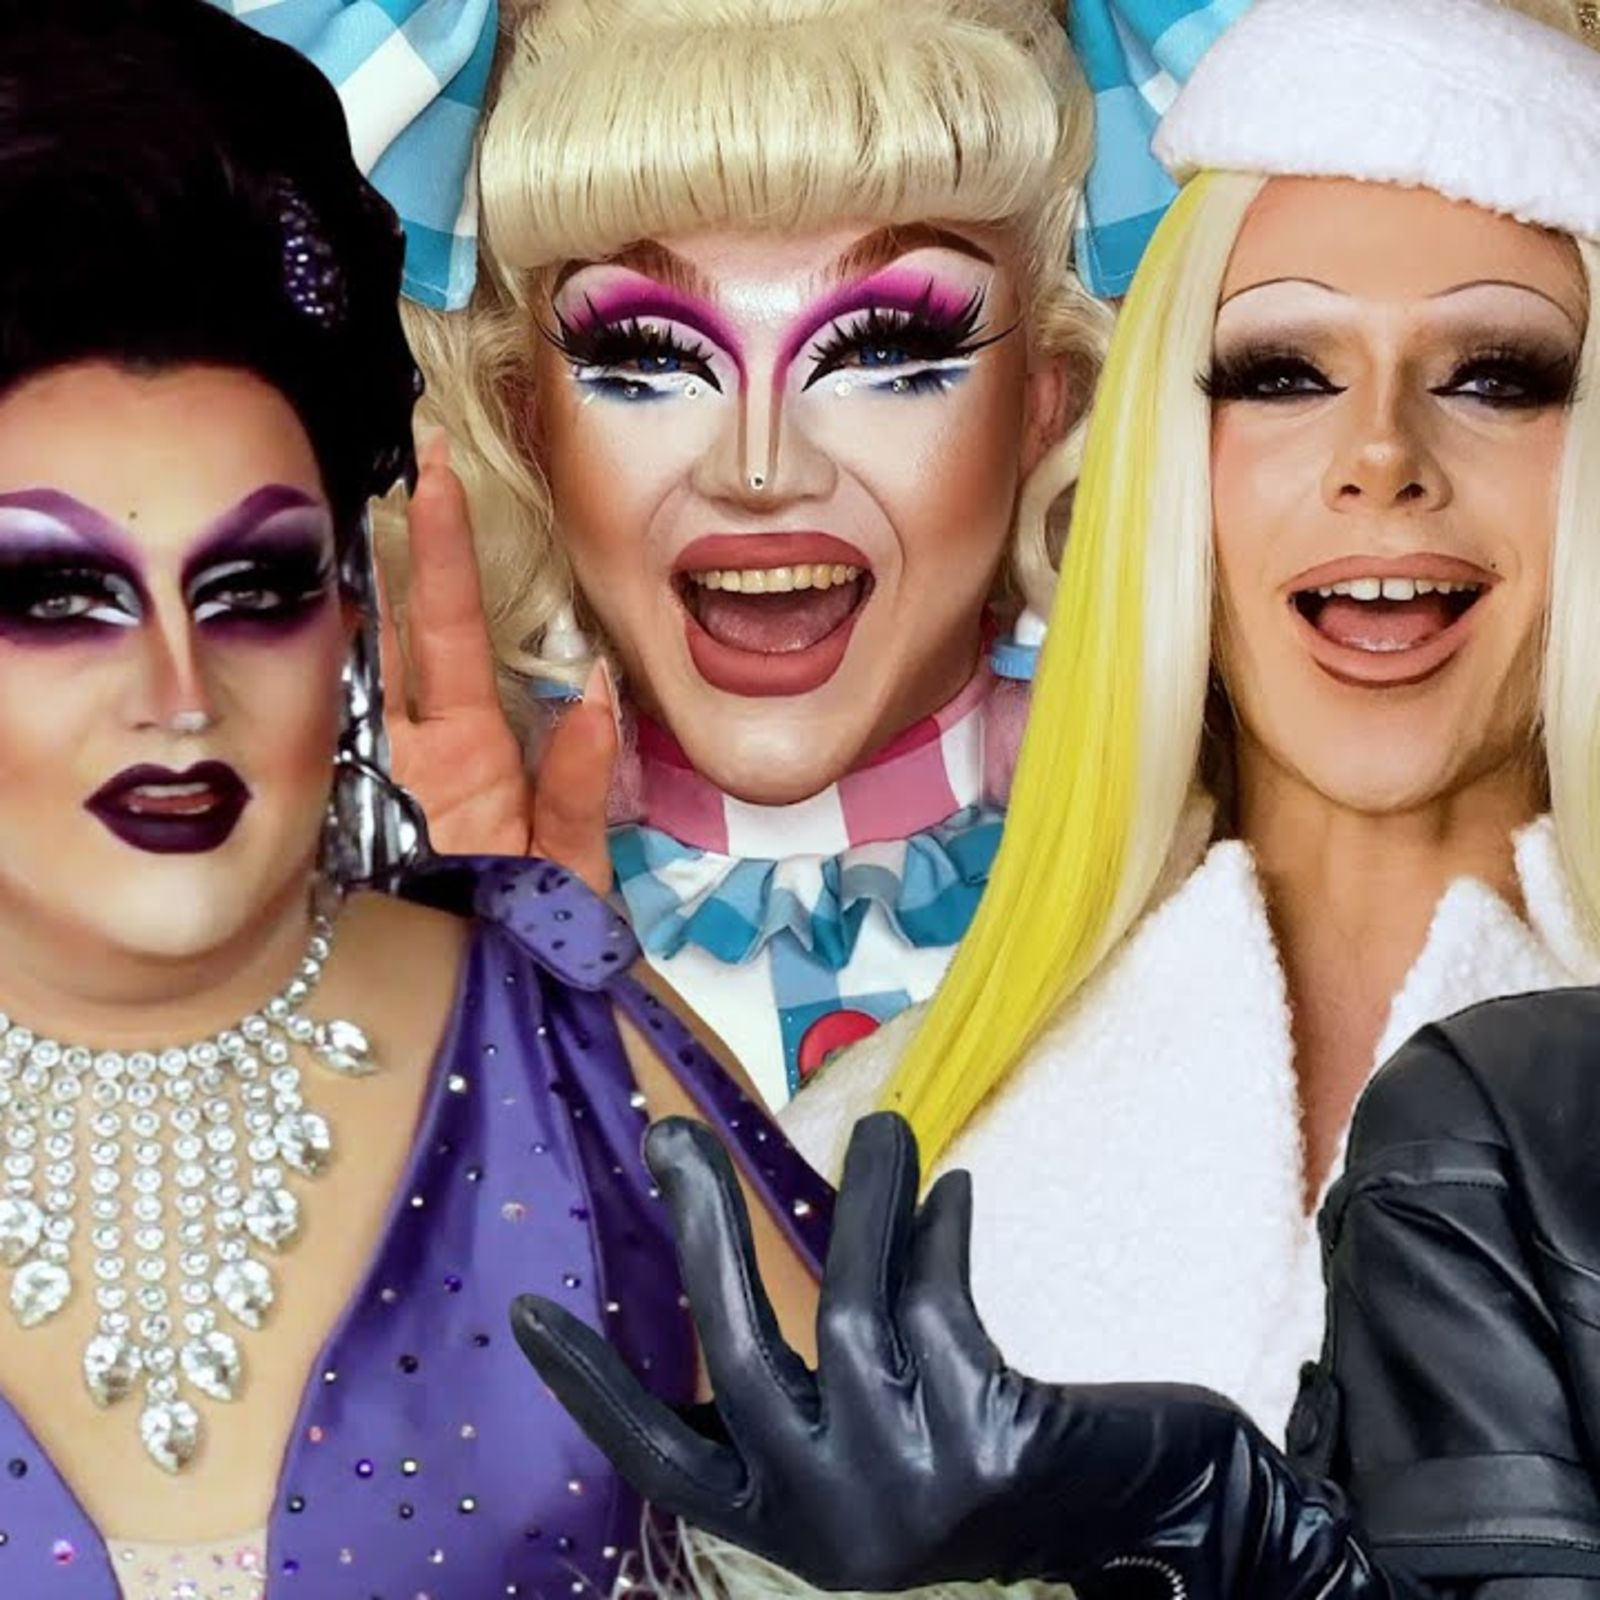 'RuPaul's Drag Race UK' Finalists Show You How To Create A Fabulous Look